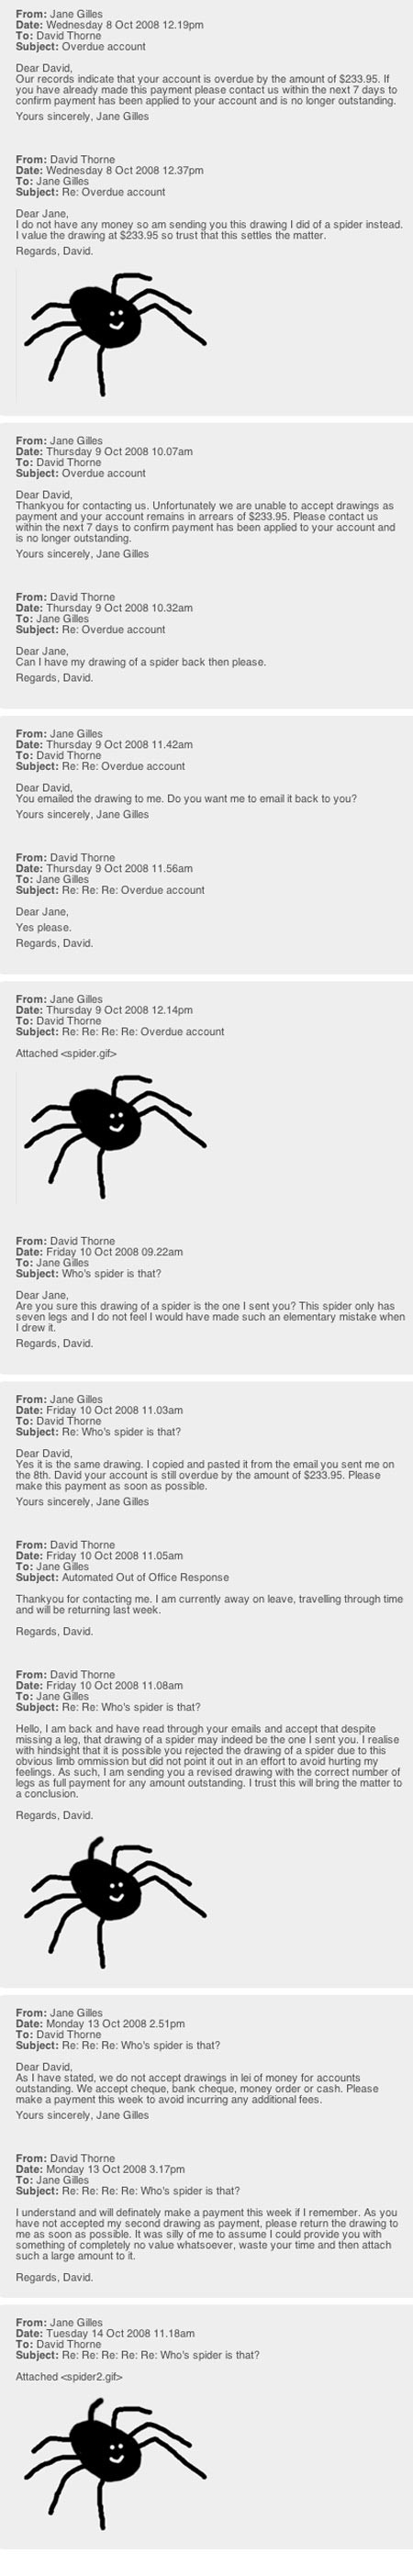 Spider Payment